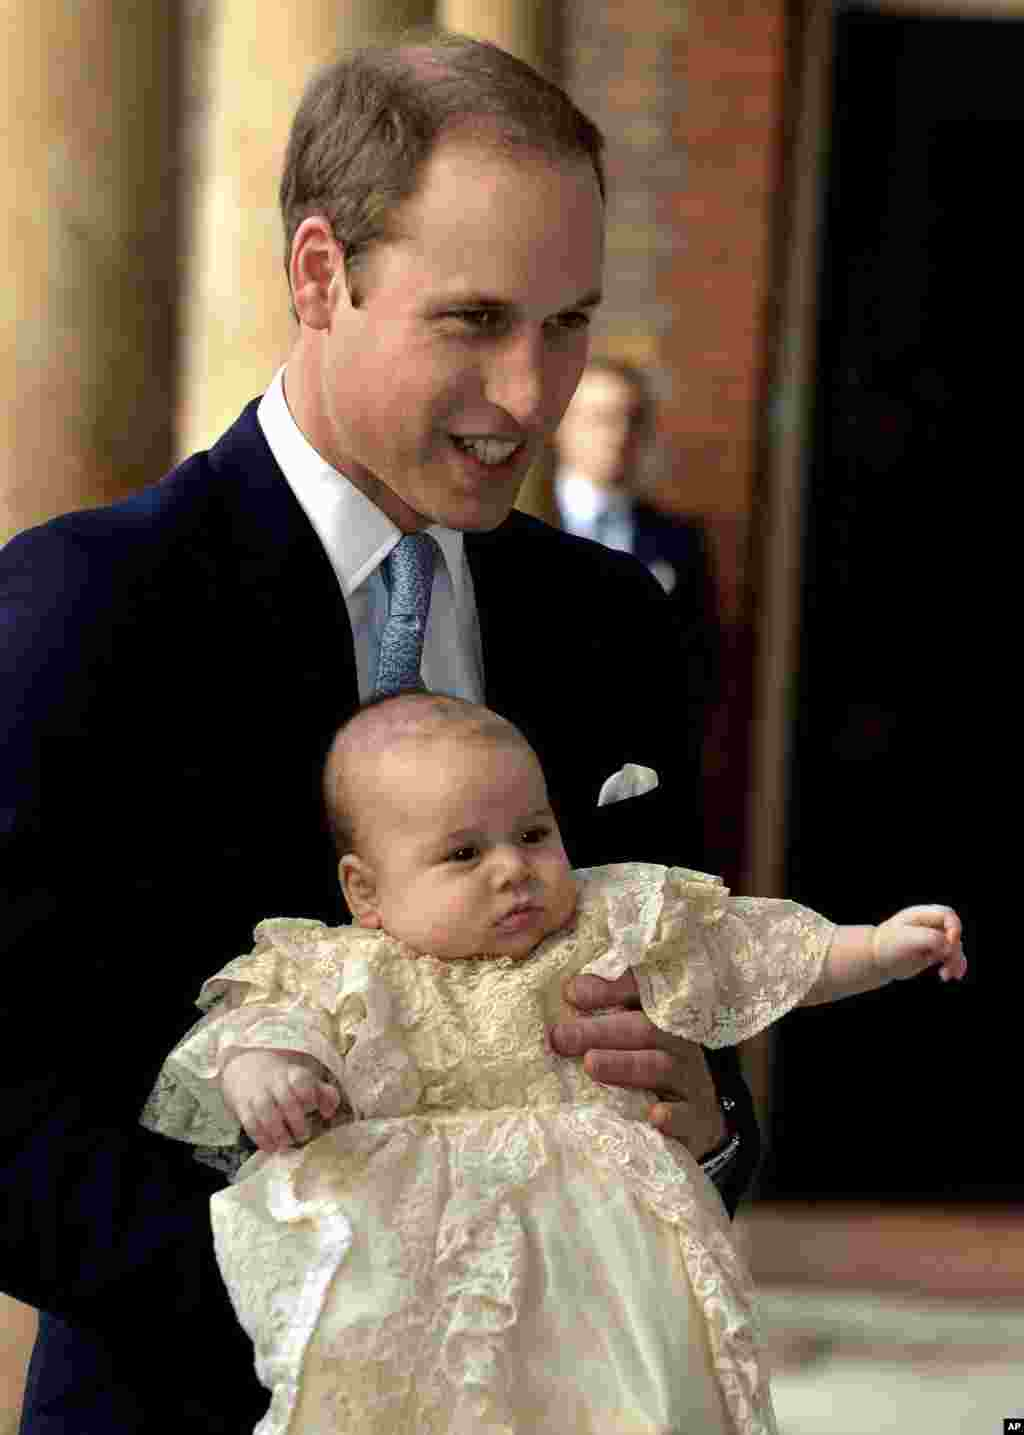 Britain's Prince William, holds his son Prince George as they arrive at Chapel Royal in St James's Palace in London, for the christening of the three month-old Prince, Oct. 23, 2013.